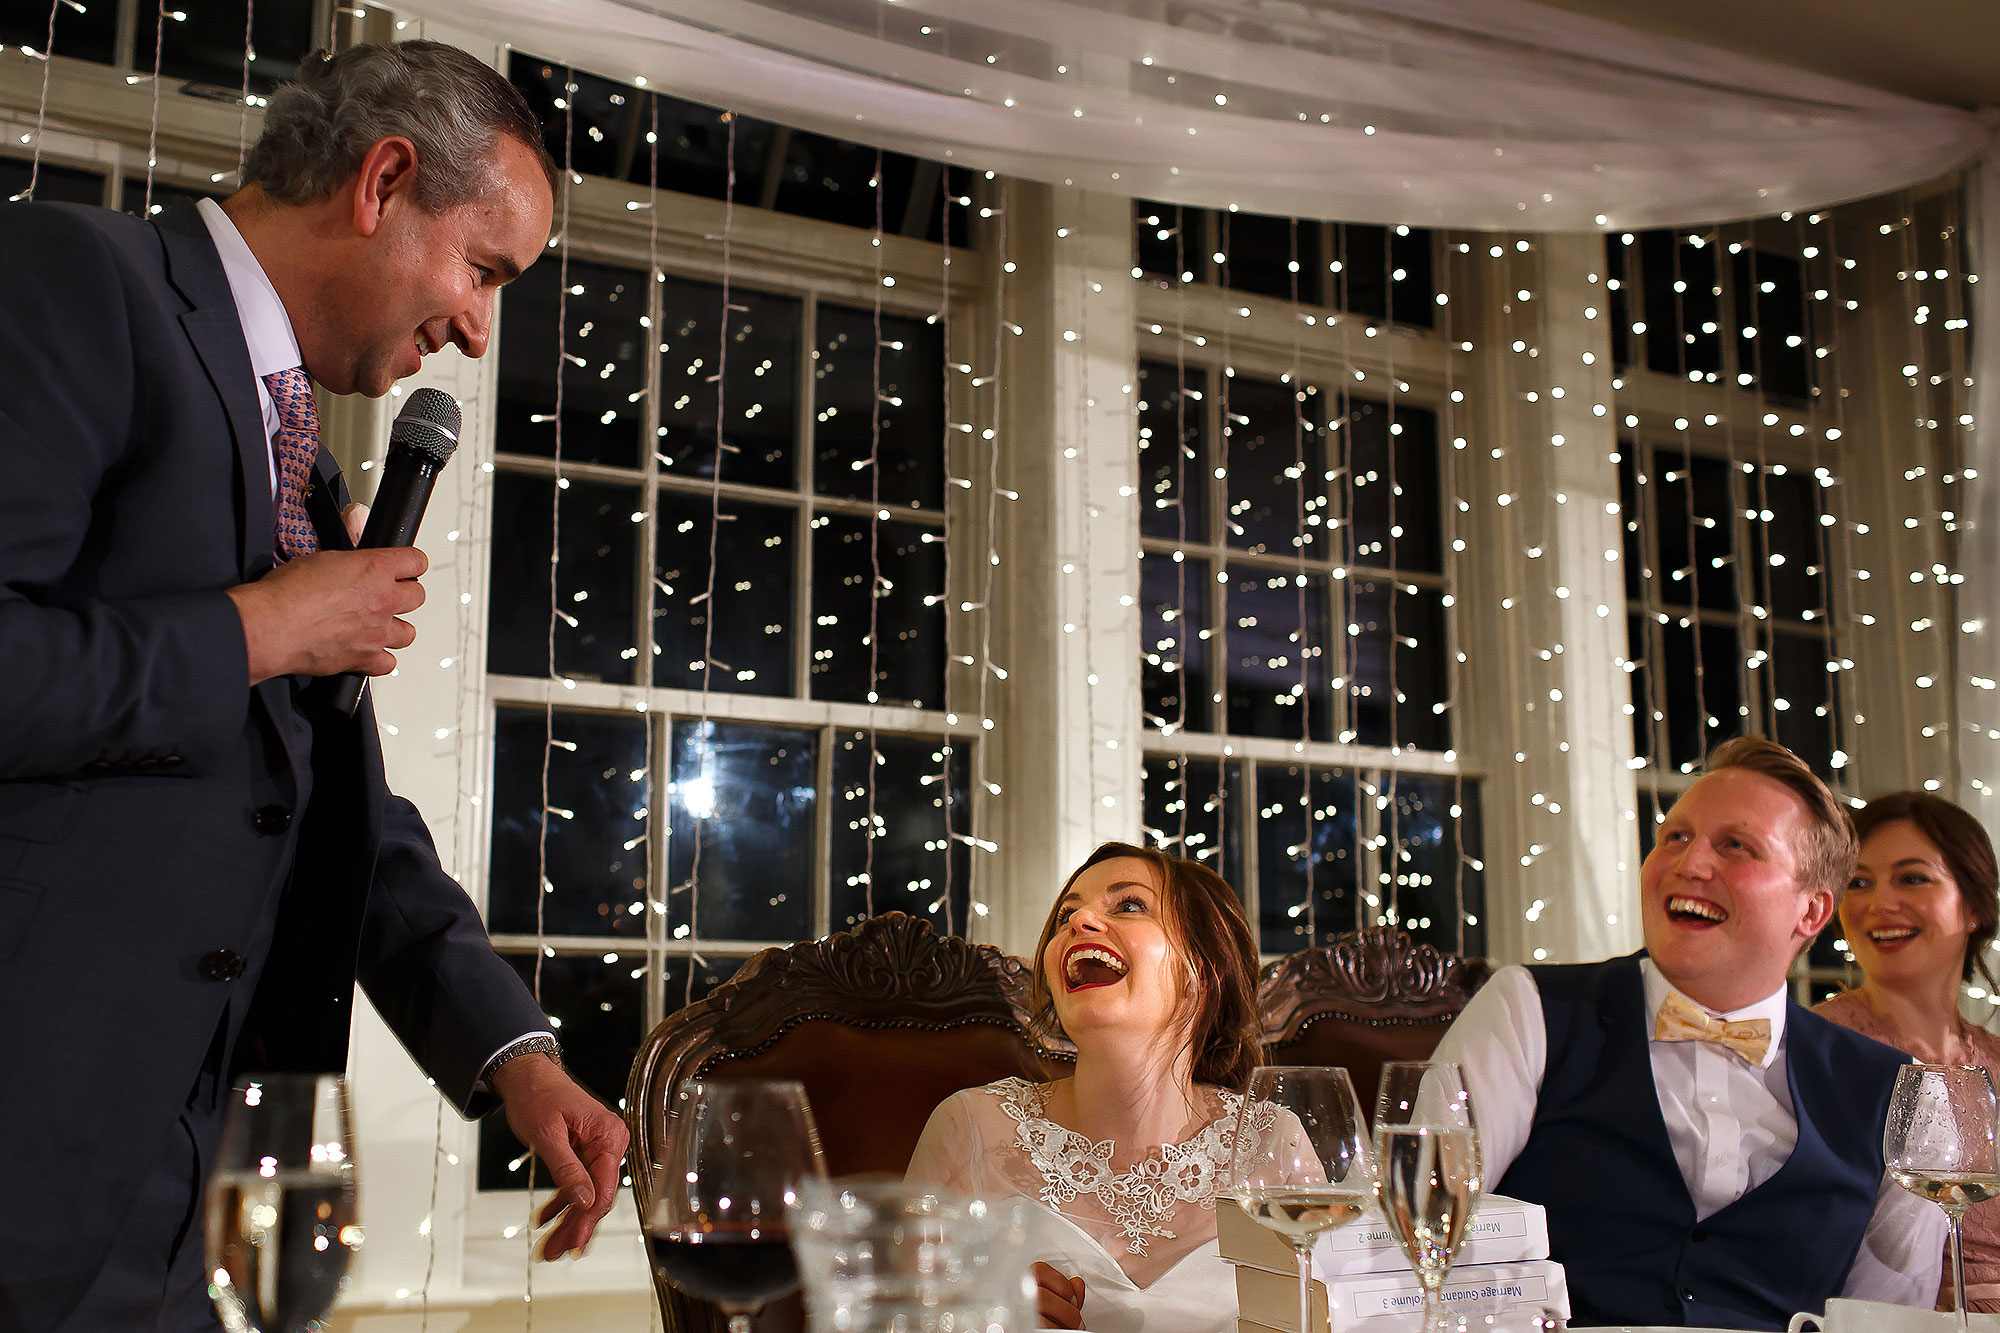 Bride and groom laughing with mouths wide open during the wedding speeches | Mitton Hall wedding photographs by Toni Darcy Photography